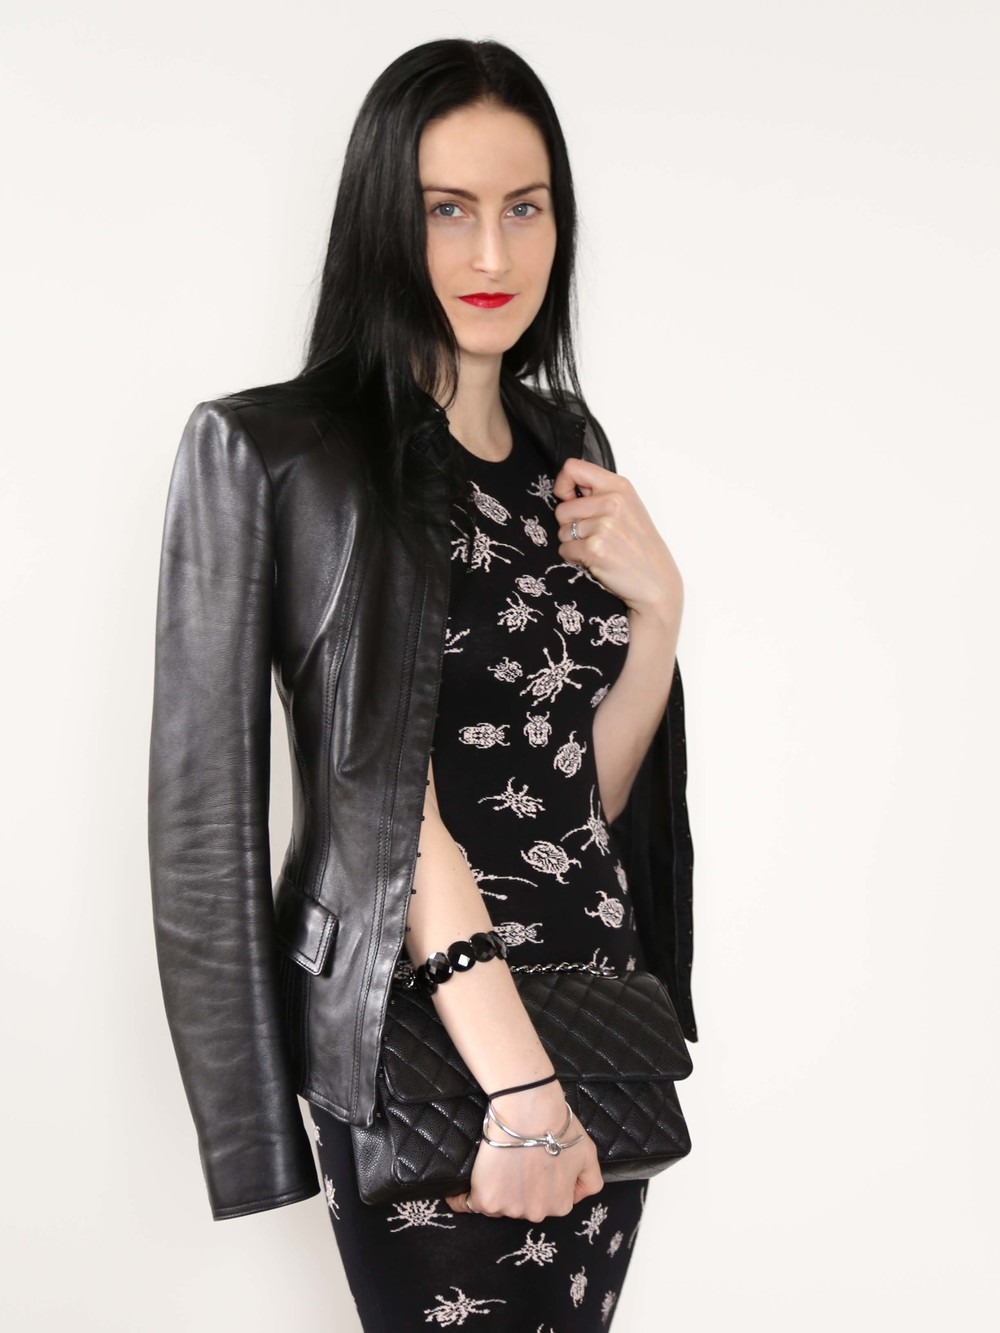 McQ Insect Print Dress, Burberry Prorsum Leather Jacket, Chanel Bag, Silver Knot Cuff, Onyx Bracelet